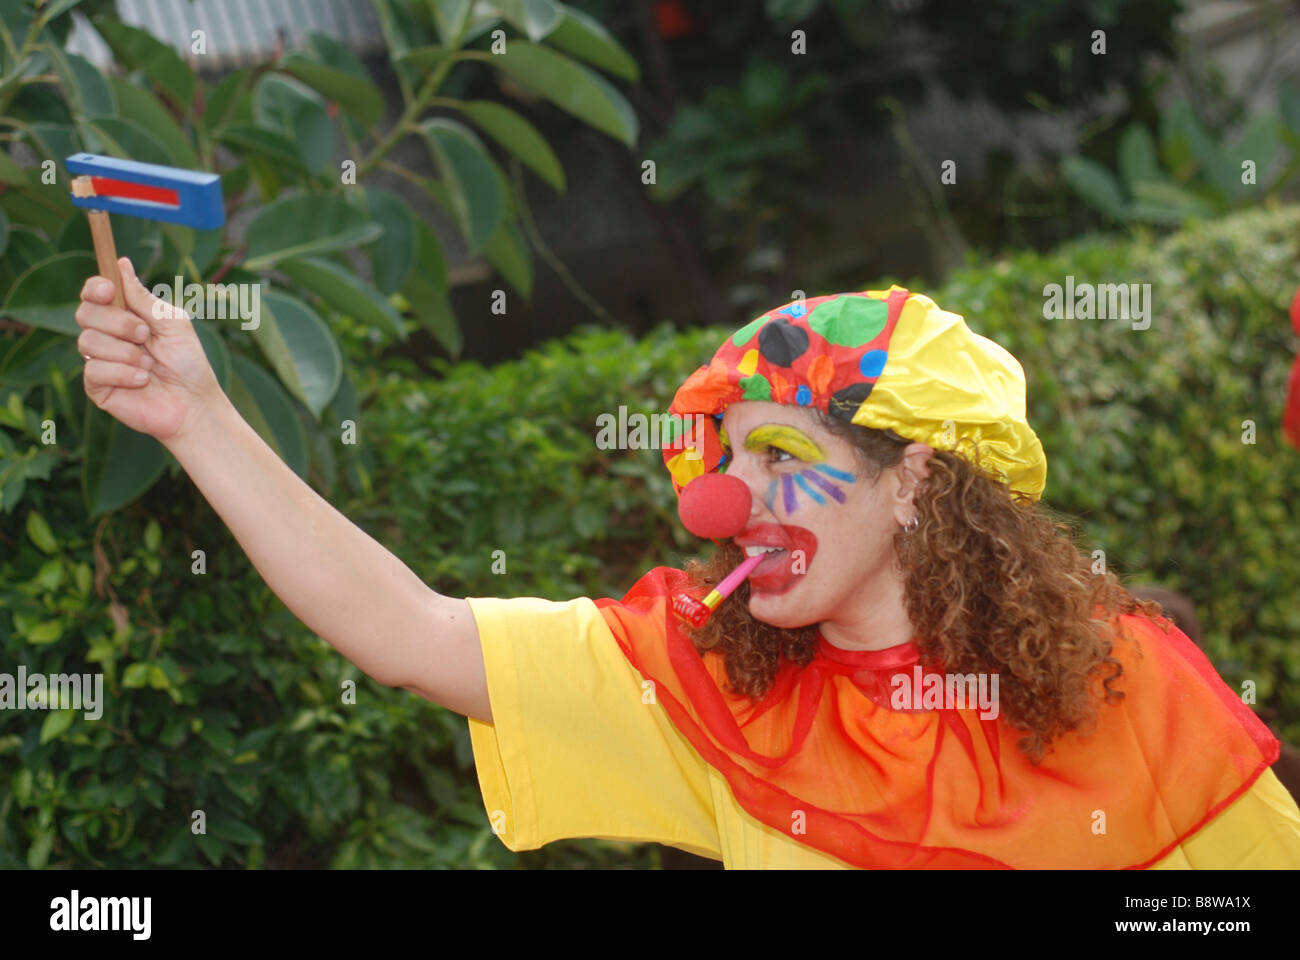 Israel Purim A young woman dressed up as a clown Stock Photo